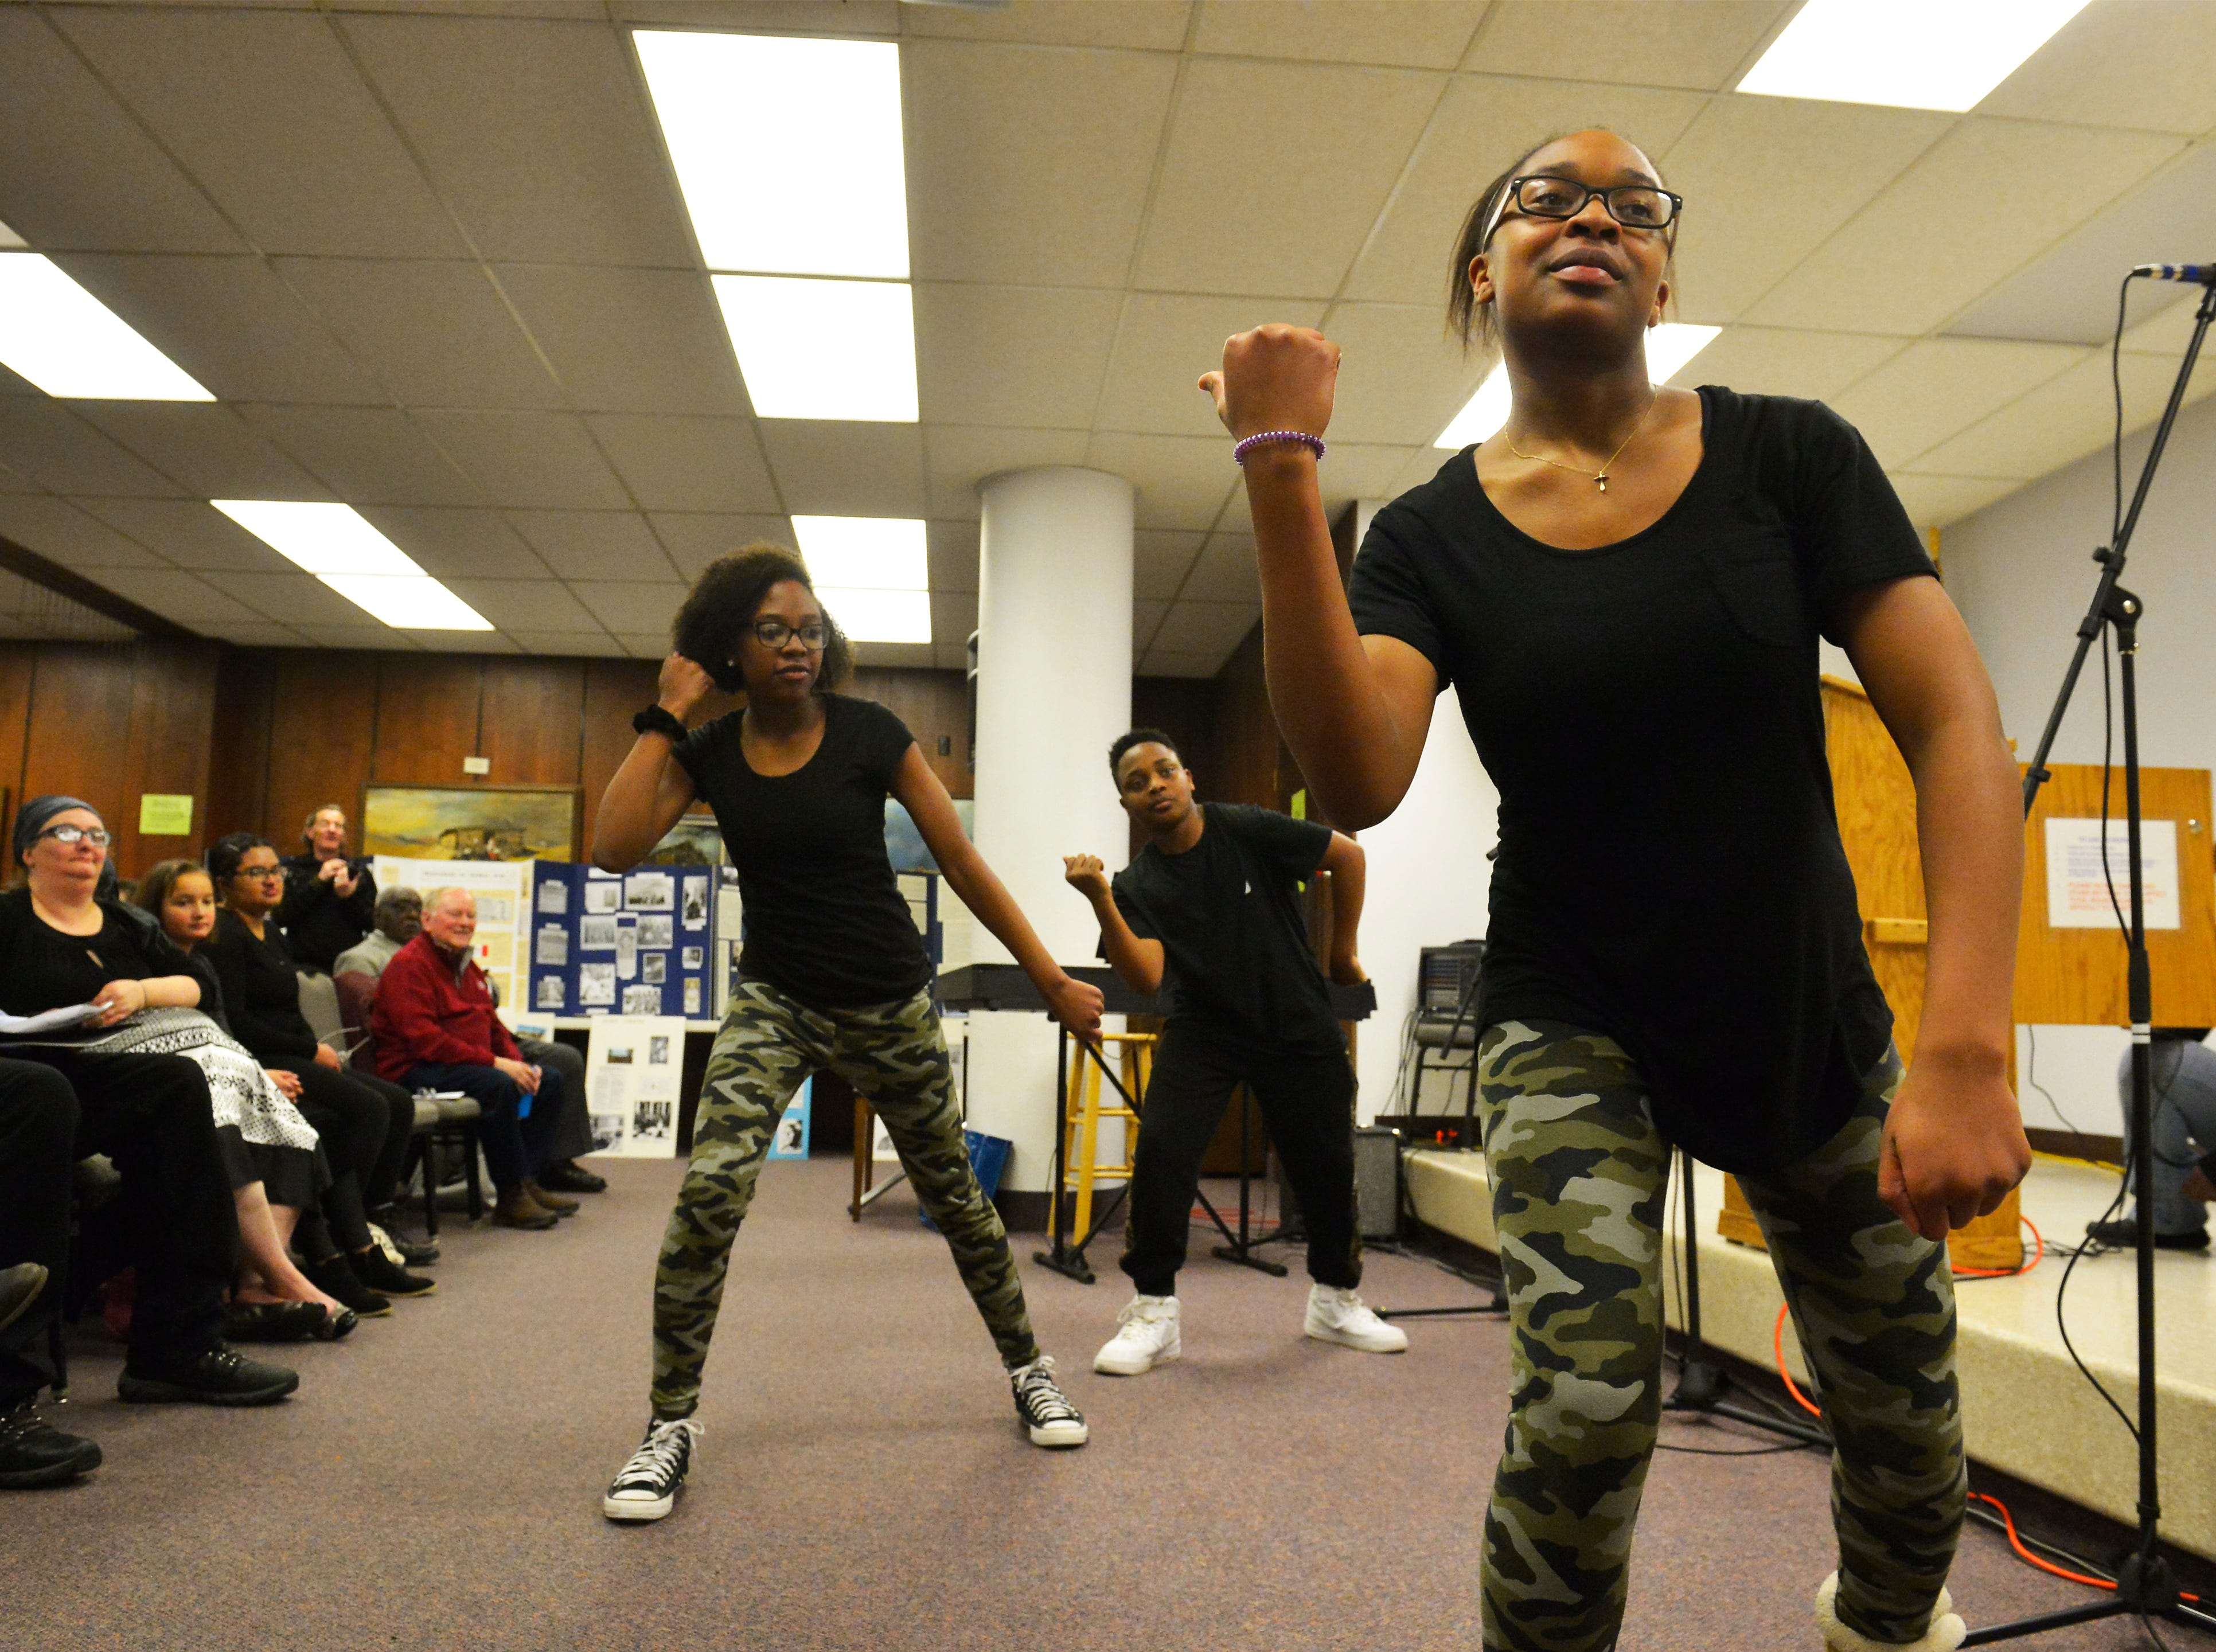 Members of the Alexander Temple Hip Hop Saints dance group, Sareya Hicks, front,  Maliyah Hicks, center, and Bryan Washington perform during Black Heritage Evening, an event presented by the Great Falls Public Library and the Alma Smith-Jacobs Foundation to celebrate the African-American community's heritage in Great Falls, Thursday evening at the Great Falls Public Library.